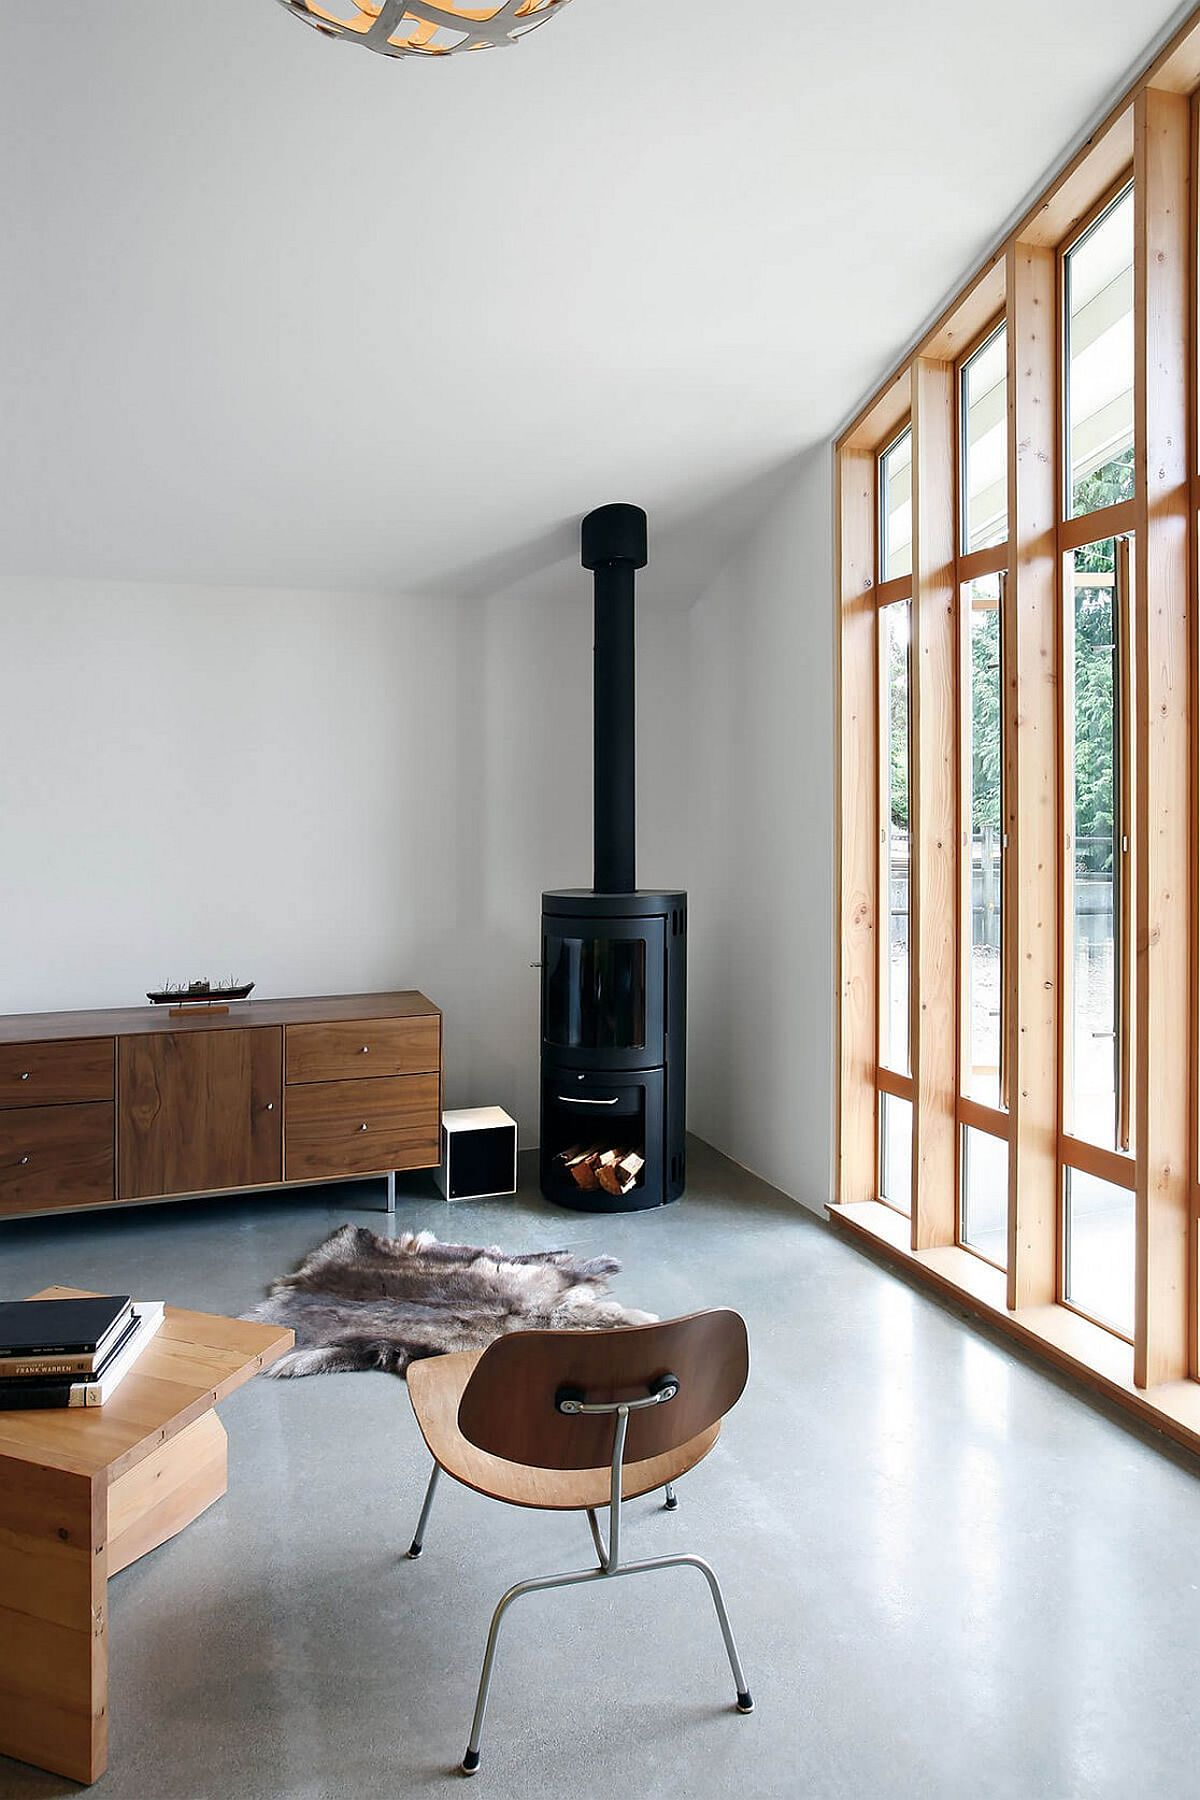 Fireplace in the corner and smart credenza fill the corner of the studio space